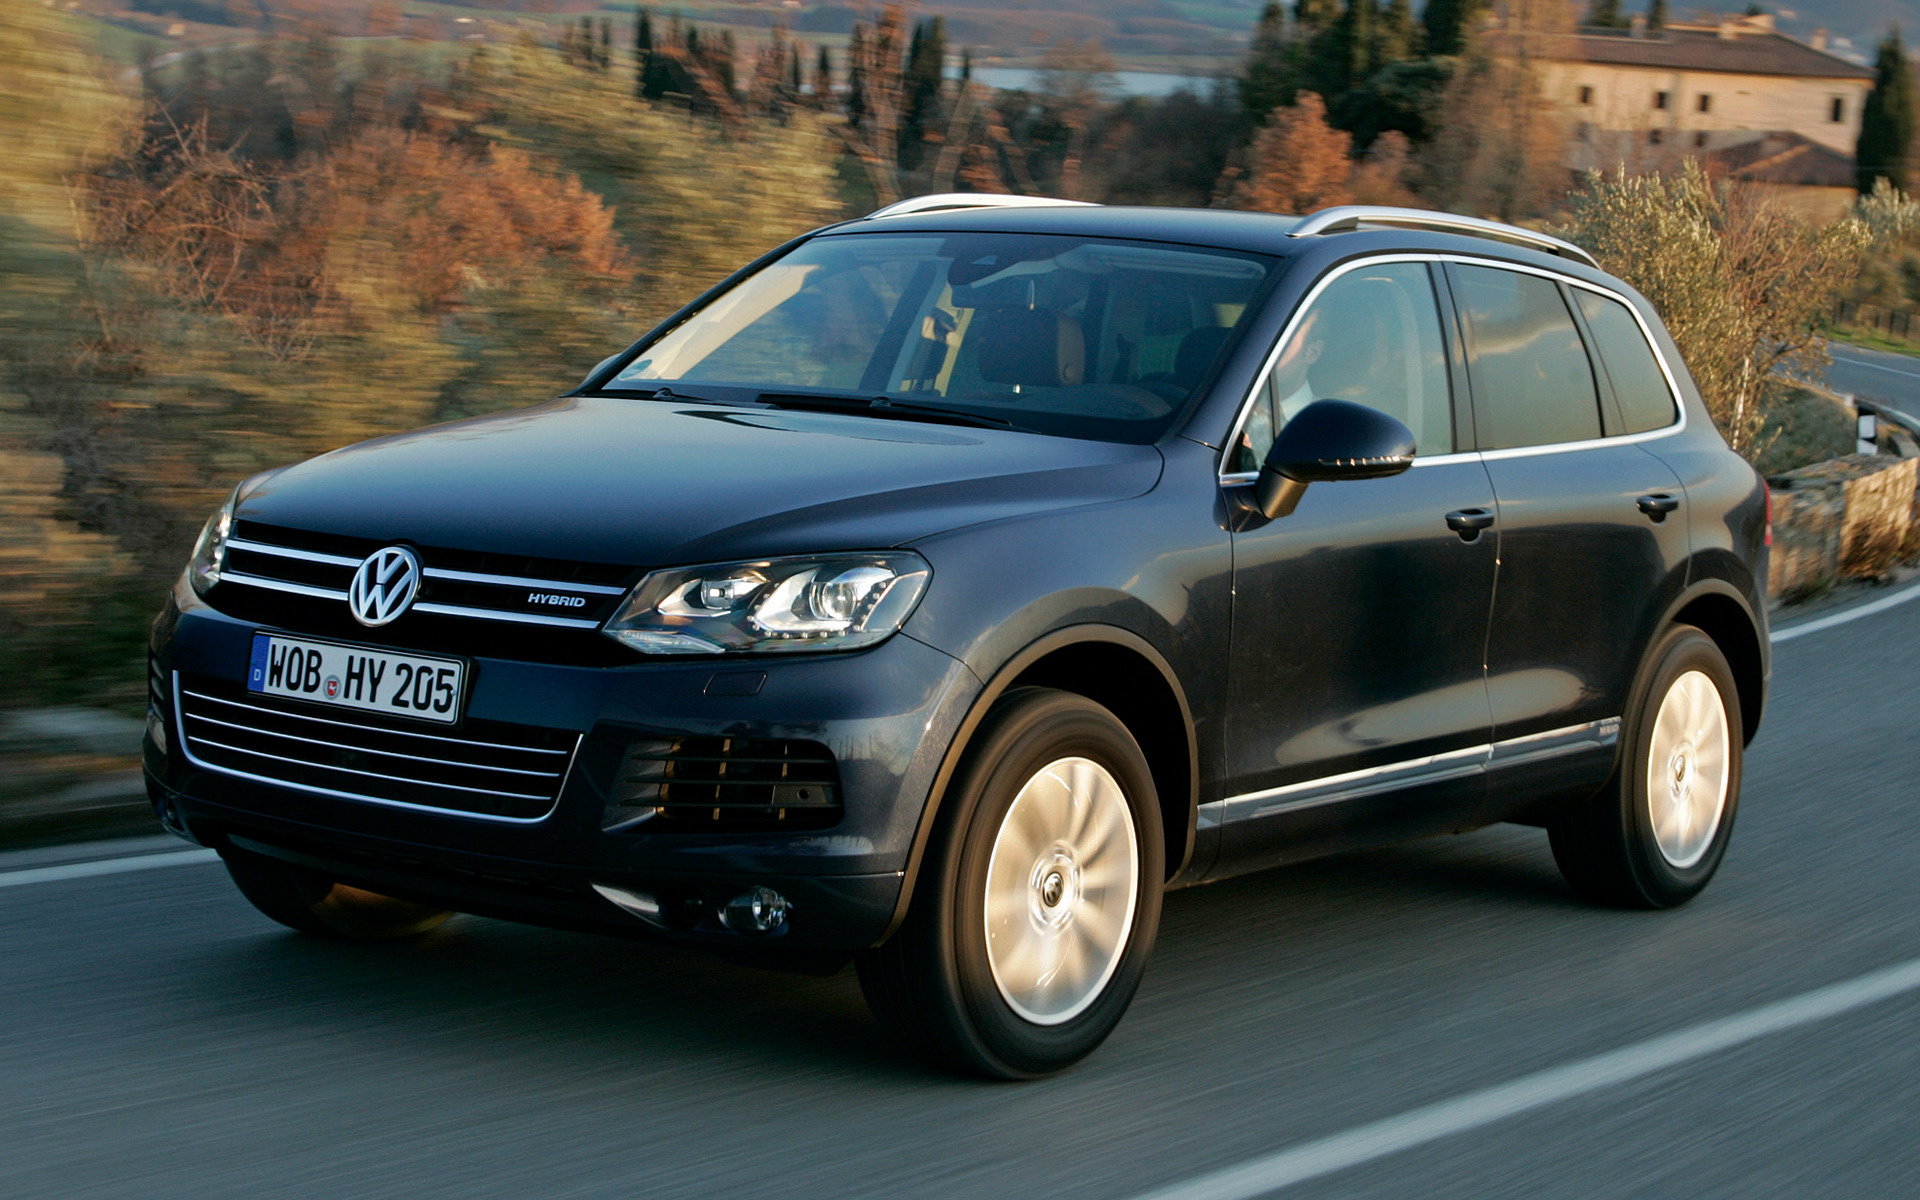 2010 volkswagen touareg hybrid wallpapers and hd images. Black Bedroom Furniture Sets. Home Design Ideas